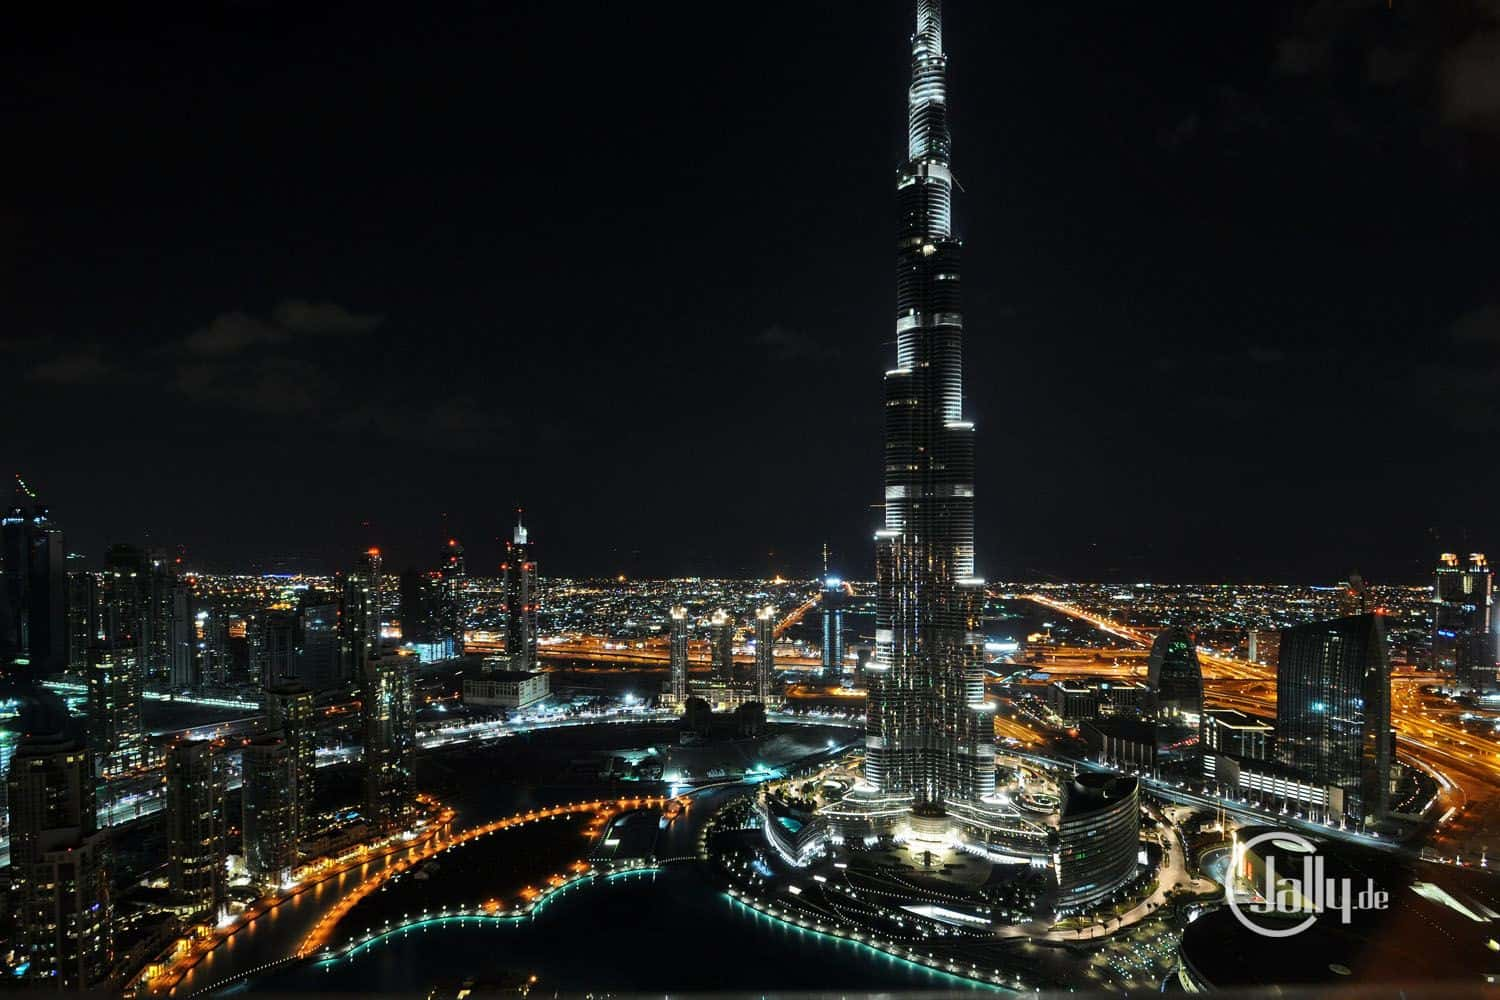 burj-khalifa-13818-hd-wallpapers - yp sg